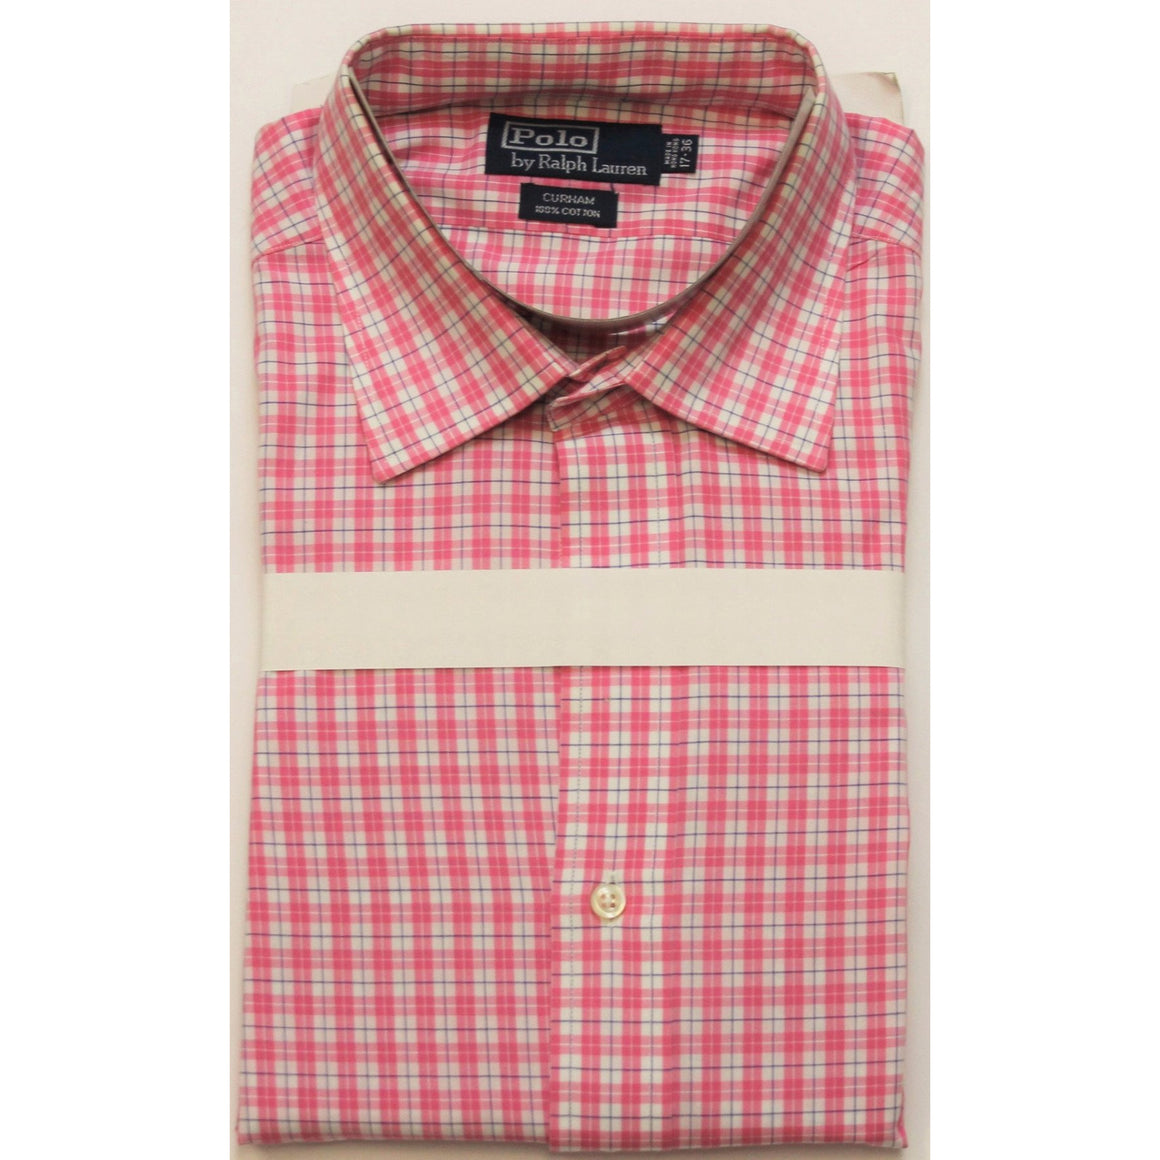 Polo Ralph Lauren Pink/Navy & White Plaid Spread Collar Shirt Sz: 17-36""